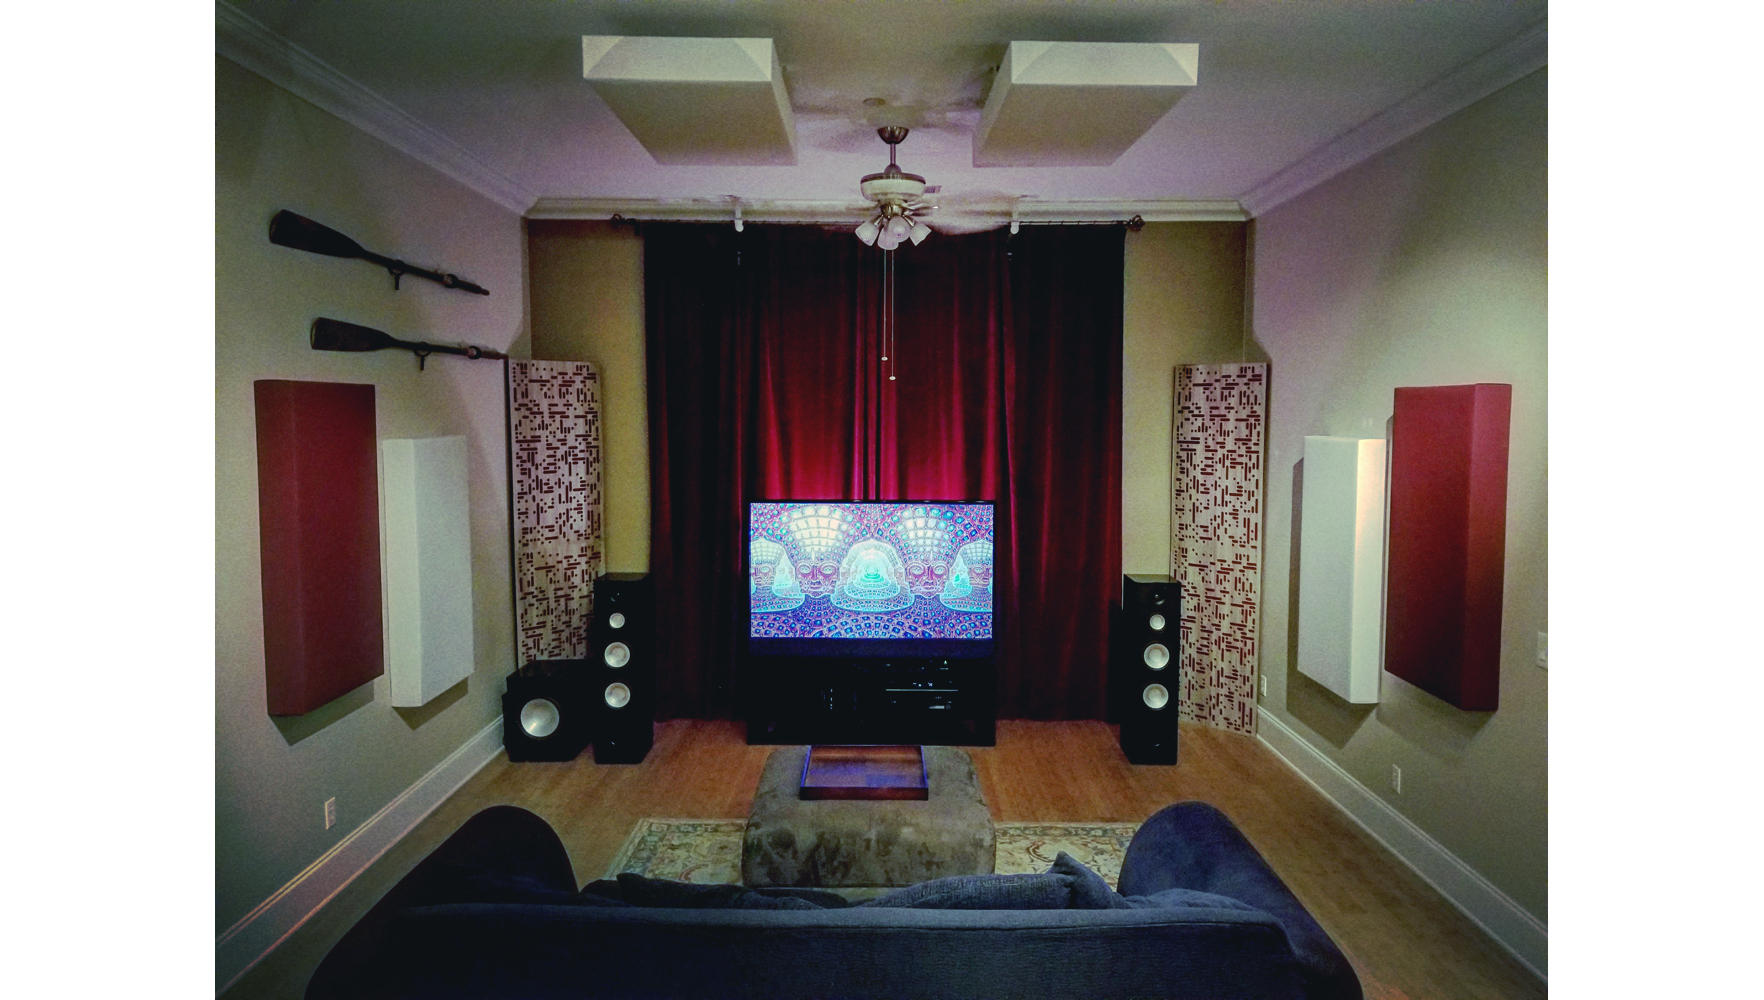 ben-w-gik-acoustics-2da-ct-alpha-panels-stacked-with-244-bass-traps-hanging-ceiling-and-wall